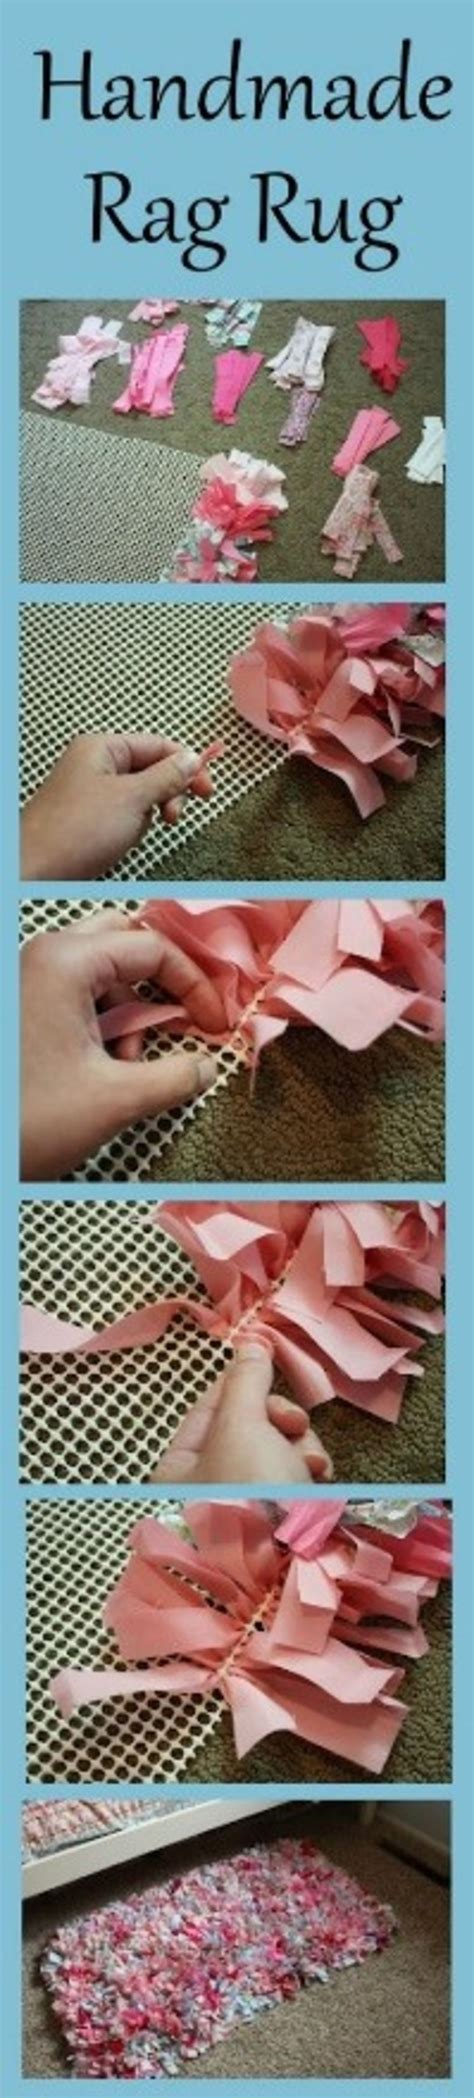 How To Make Your Own Rag Rug by How To Make Your Own Handmade Rag Rug Useful Tips